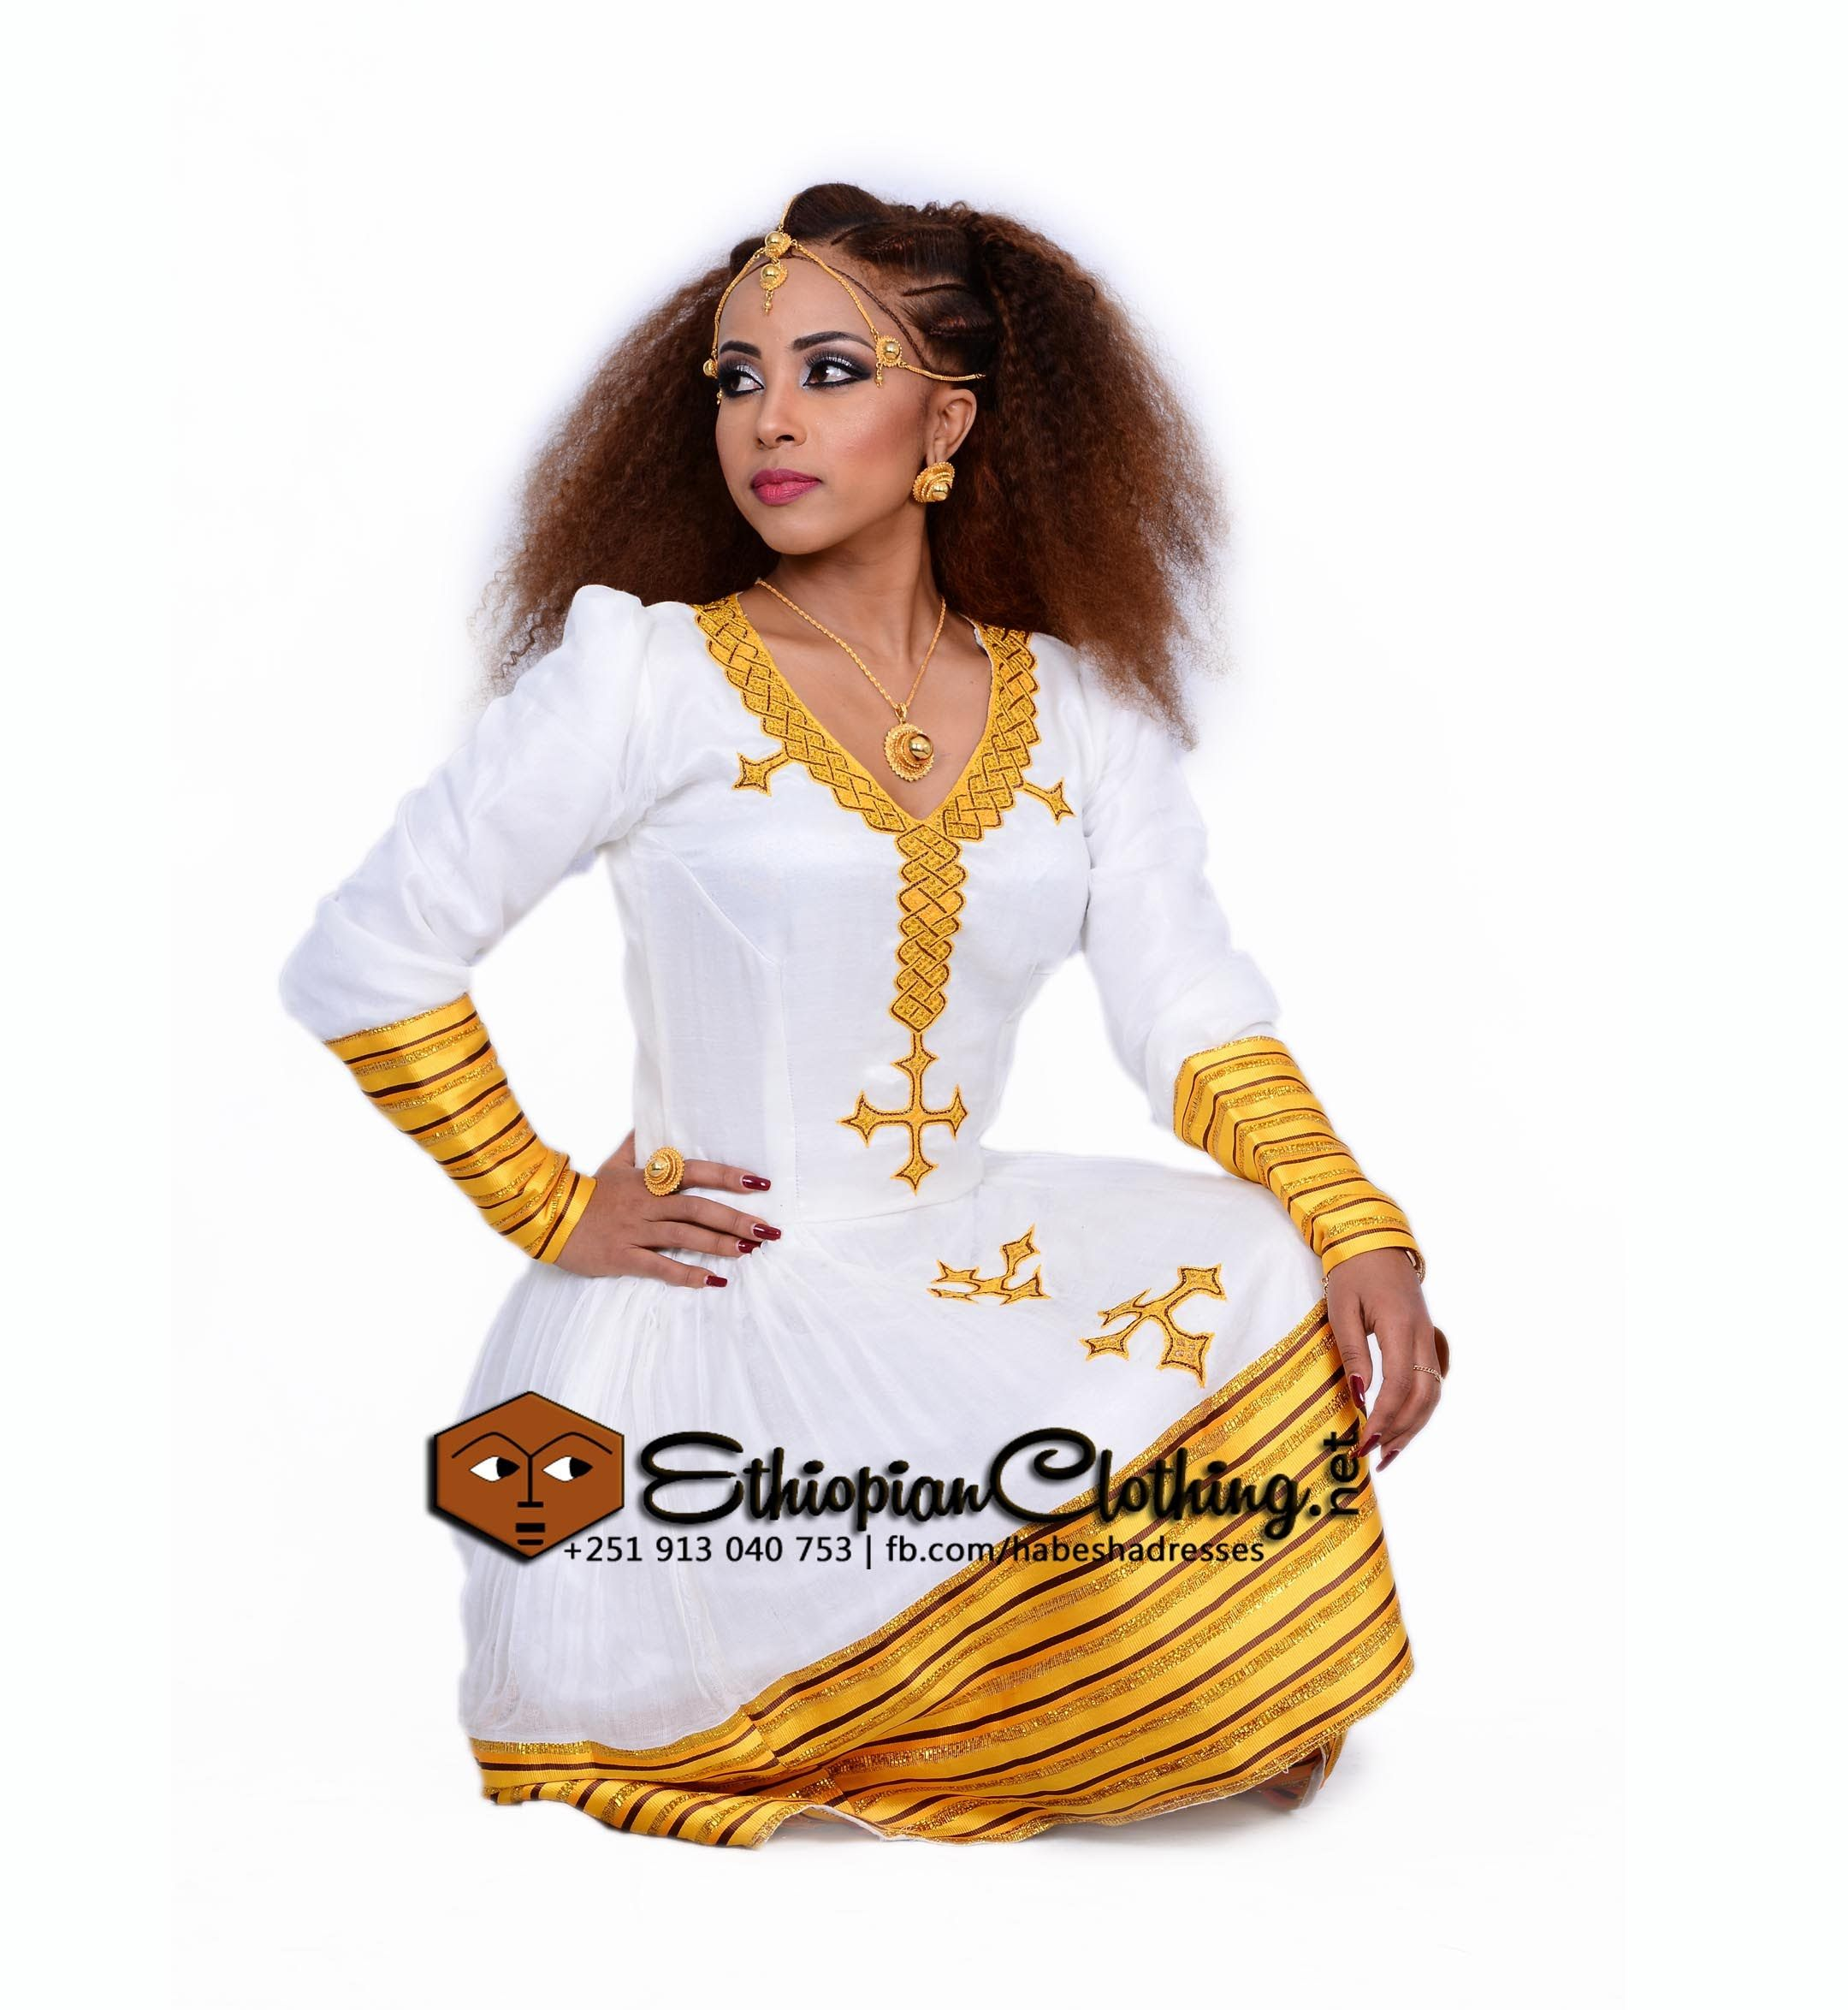 Ethiopian clothing | AFRICAN FASHION, MODELS, DESIGNERS AND ...